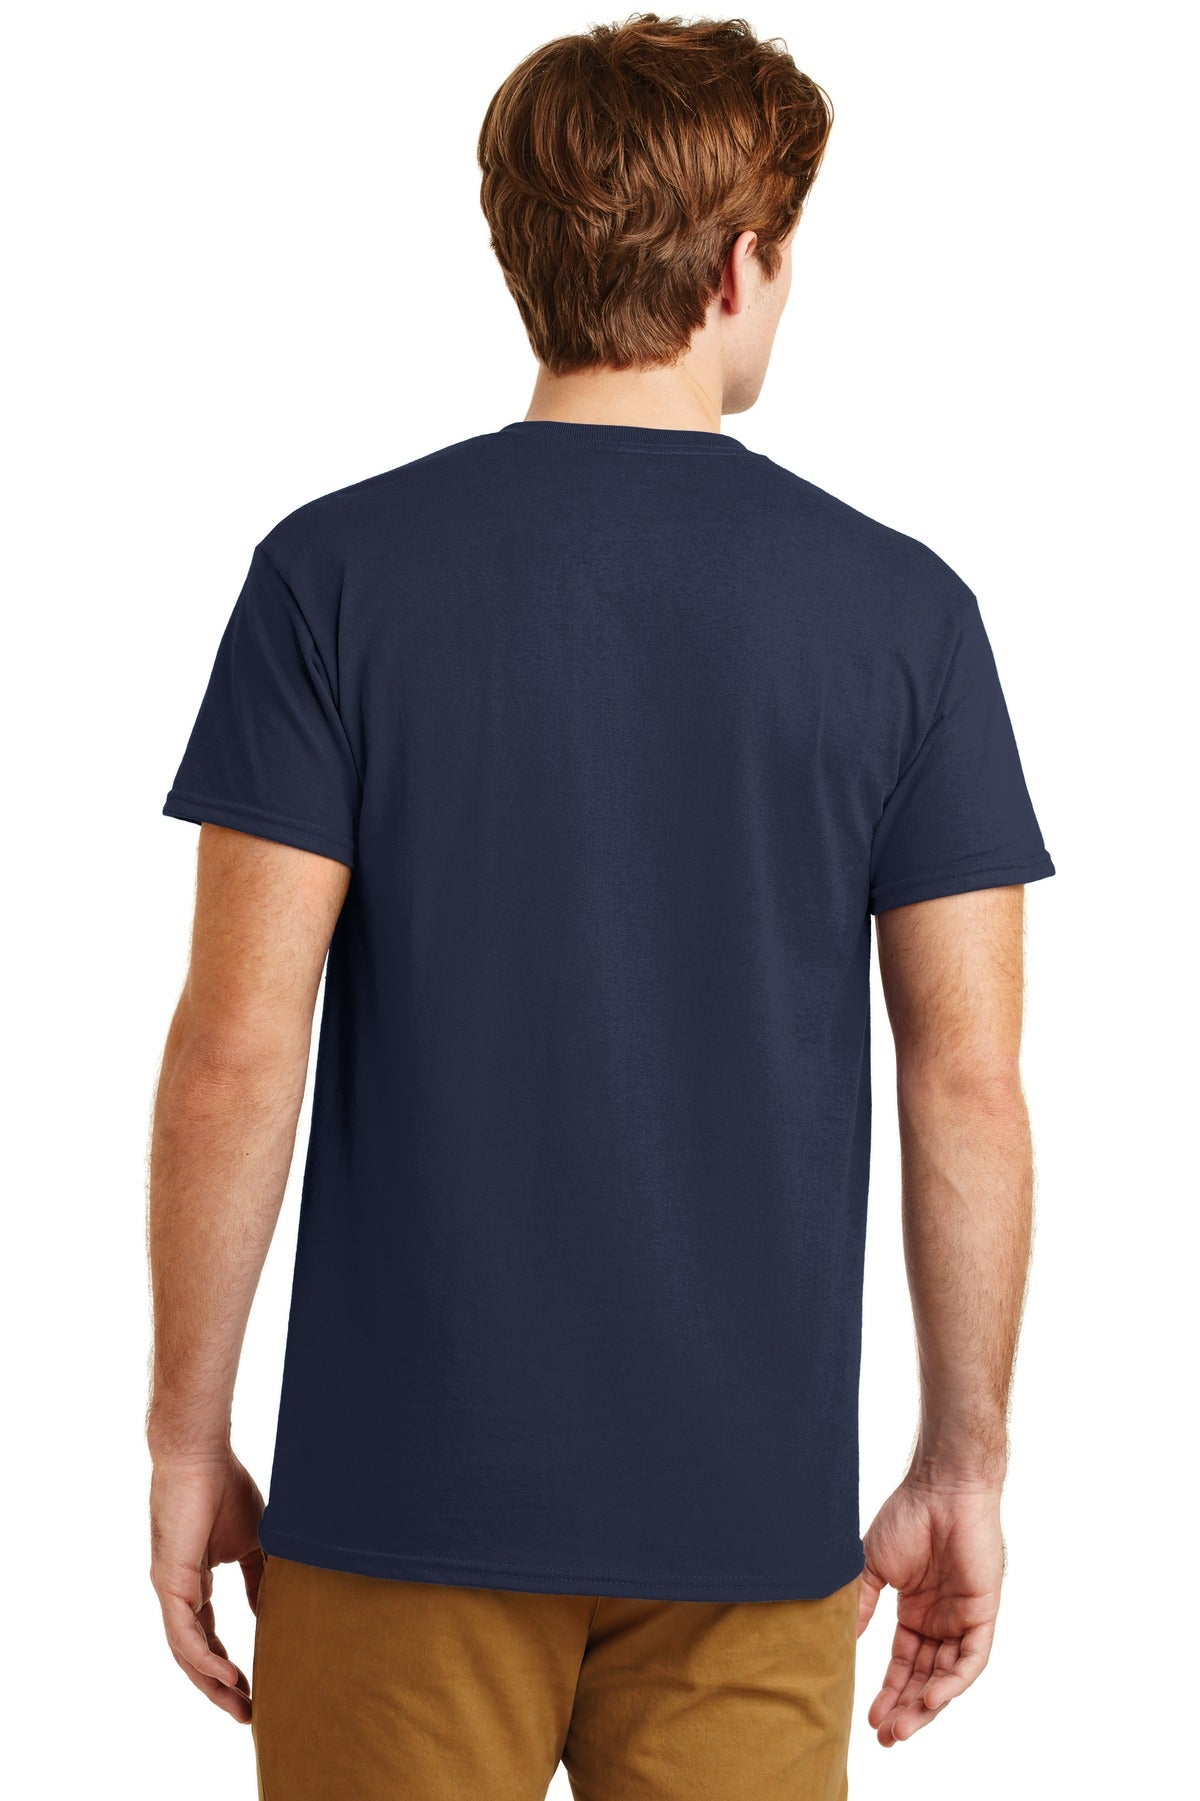 Navy Gildan DryBlend 50 Cotton/50 Poly Pocket T-Shirt.